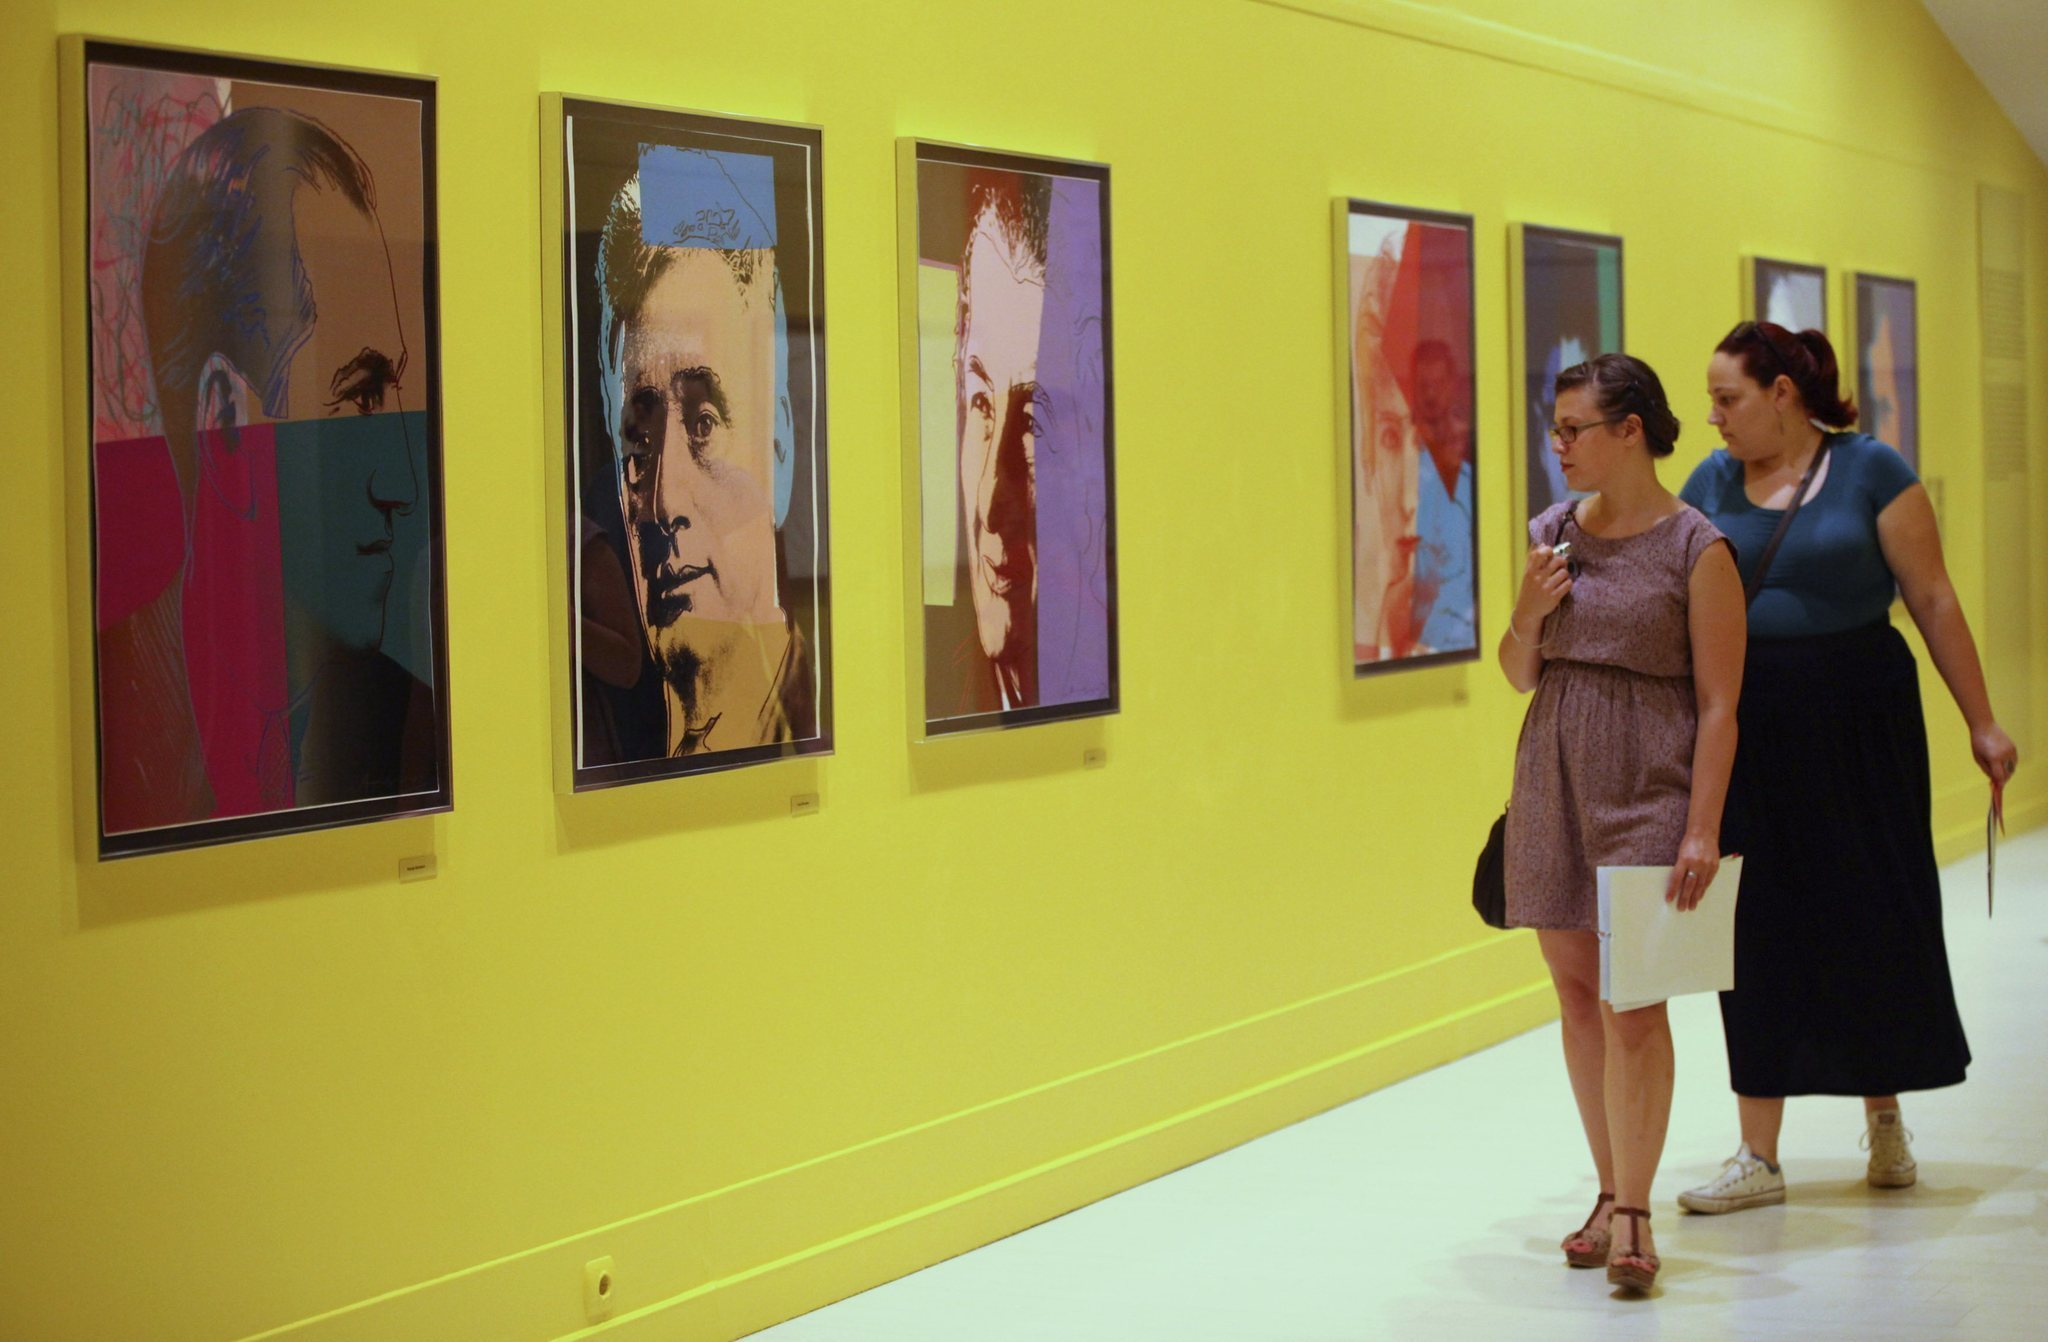 Warhol\'s soup cans cast in personal light at Turkish show - Chicago ...